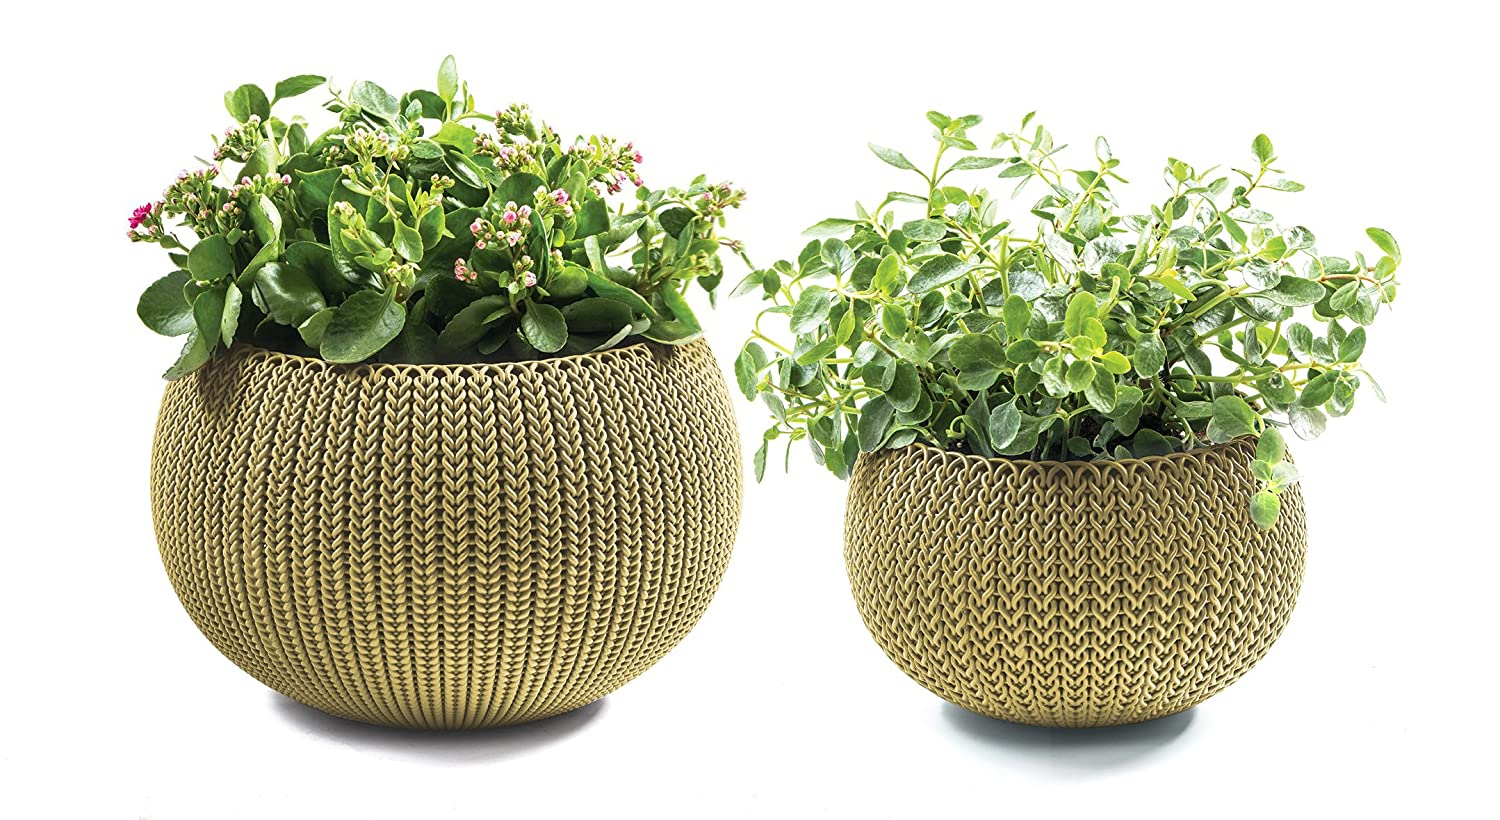 Amazon.com : Keter Cozies Plastic Planters Set Of 2, Knit Texture, Small U0026  Medium Pots With Removable Liners, Citrus Green : Garden U0026 Outdoor